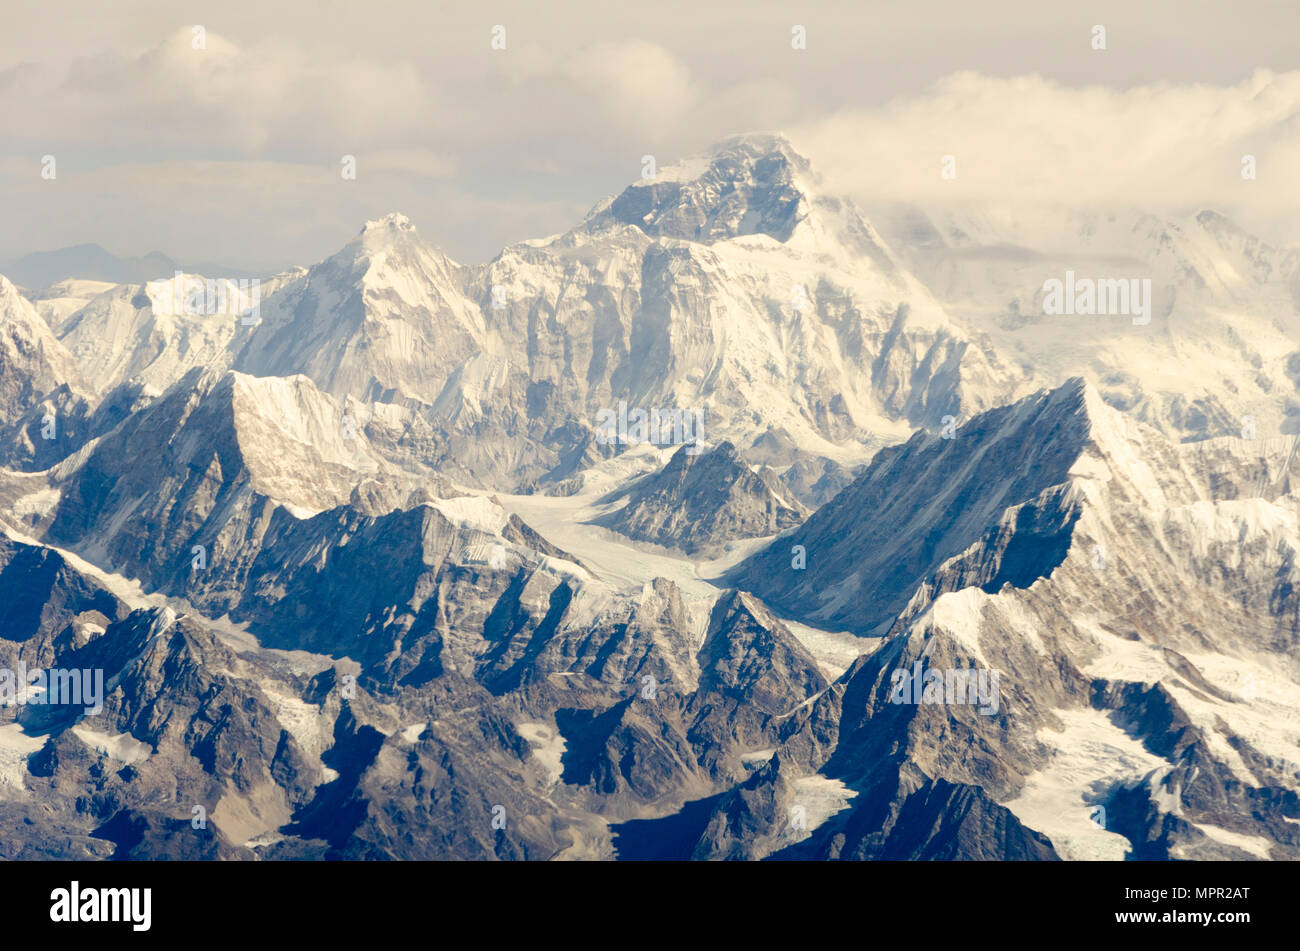 Snow capped mountains, Mount Everest, highest mountain in the world, Himalayas, Nepal Stock Photo